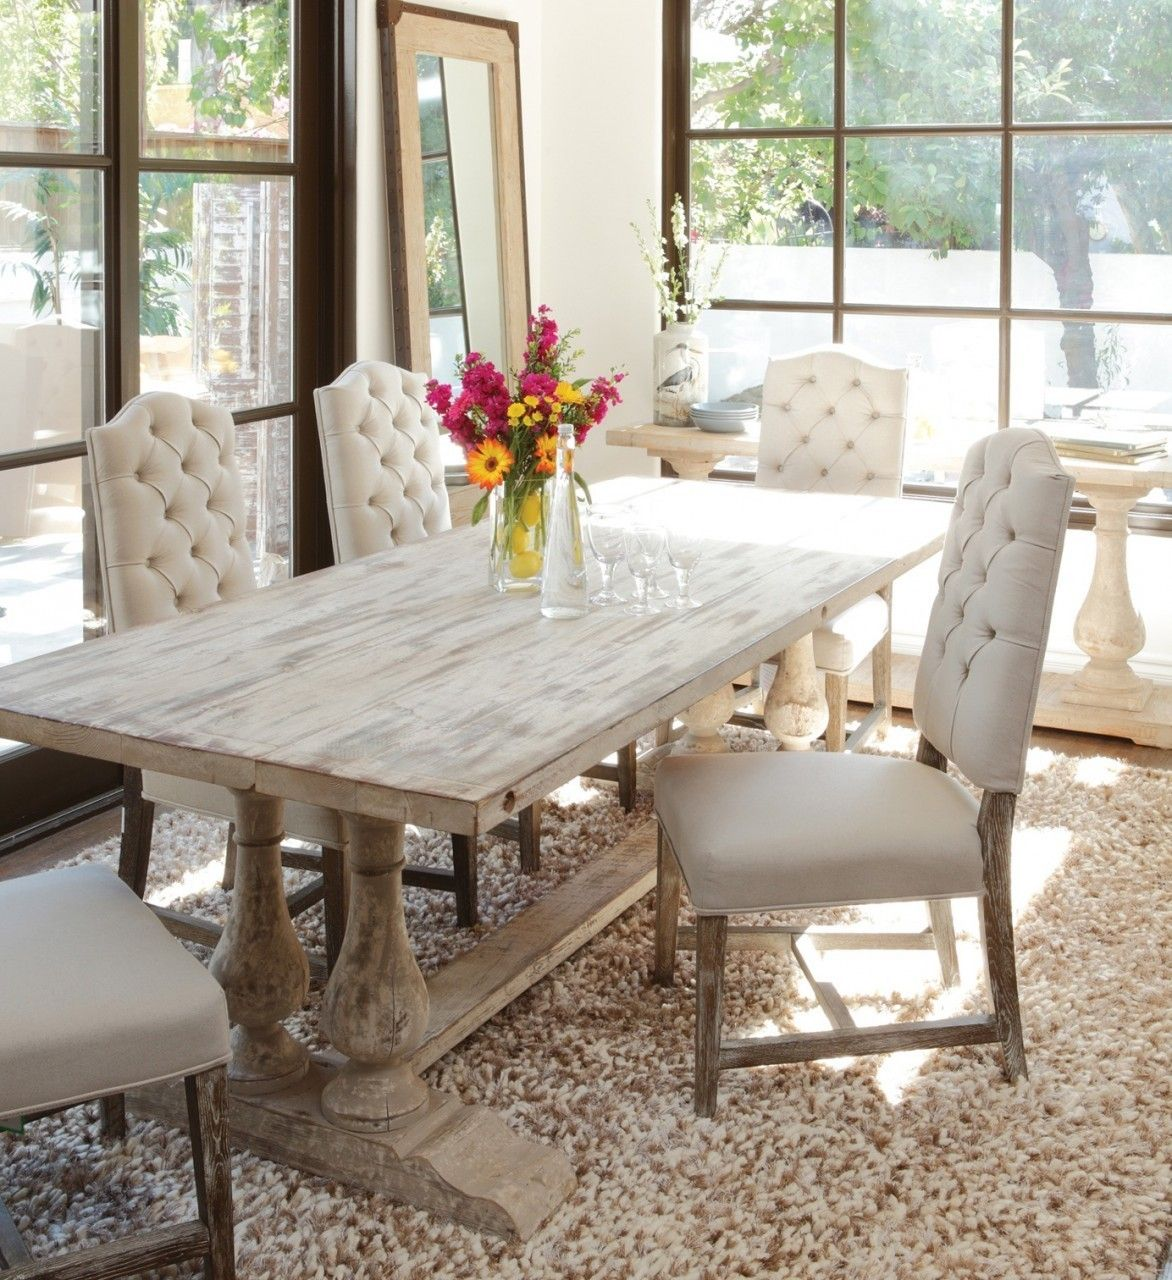 Ava Camelback Tufted Linen Dining Chair Distressed Dining Table